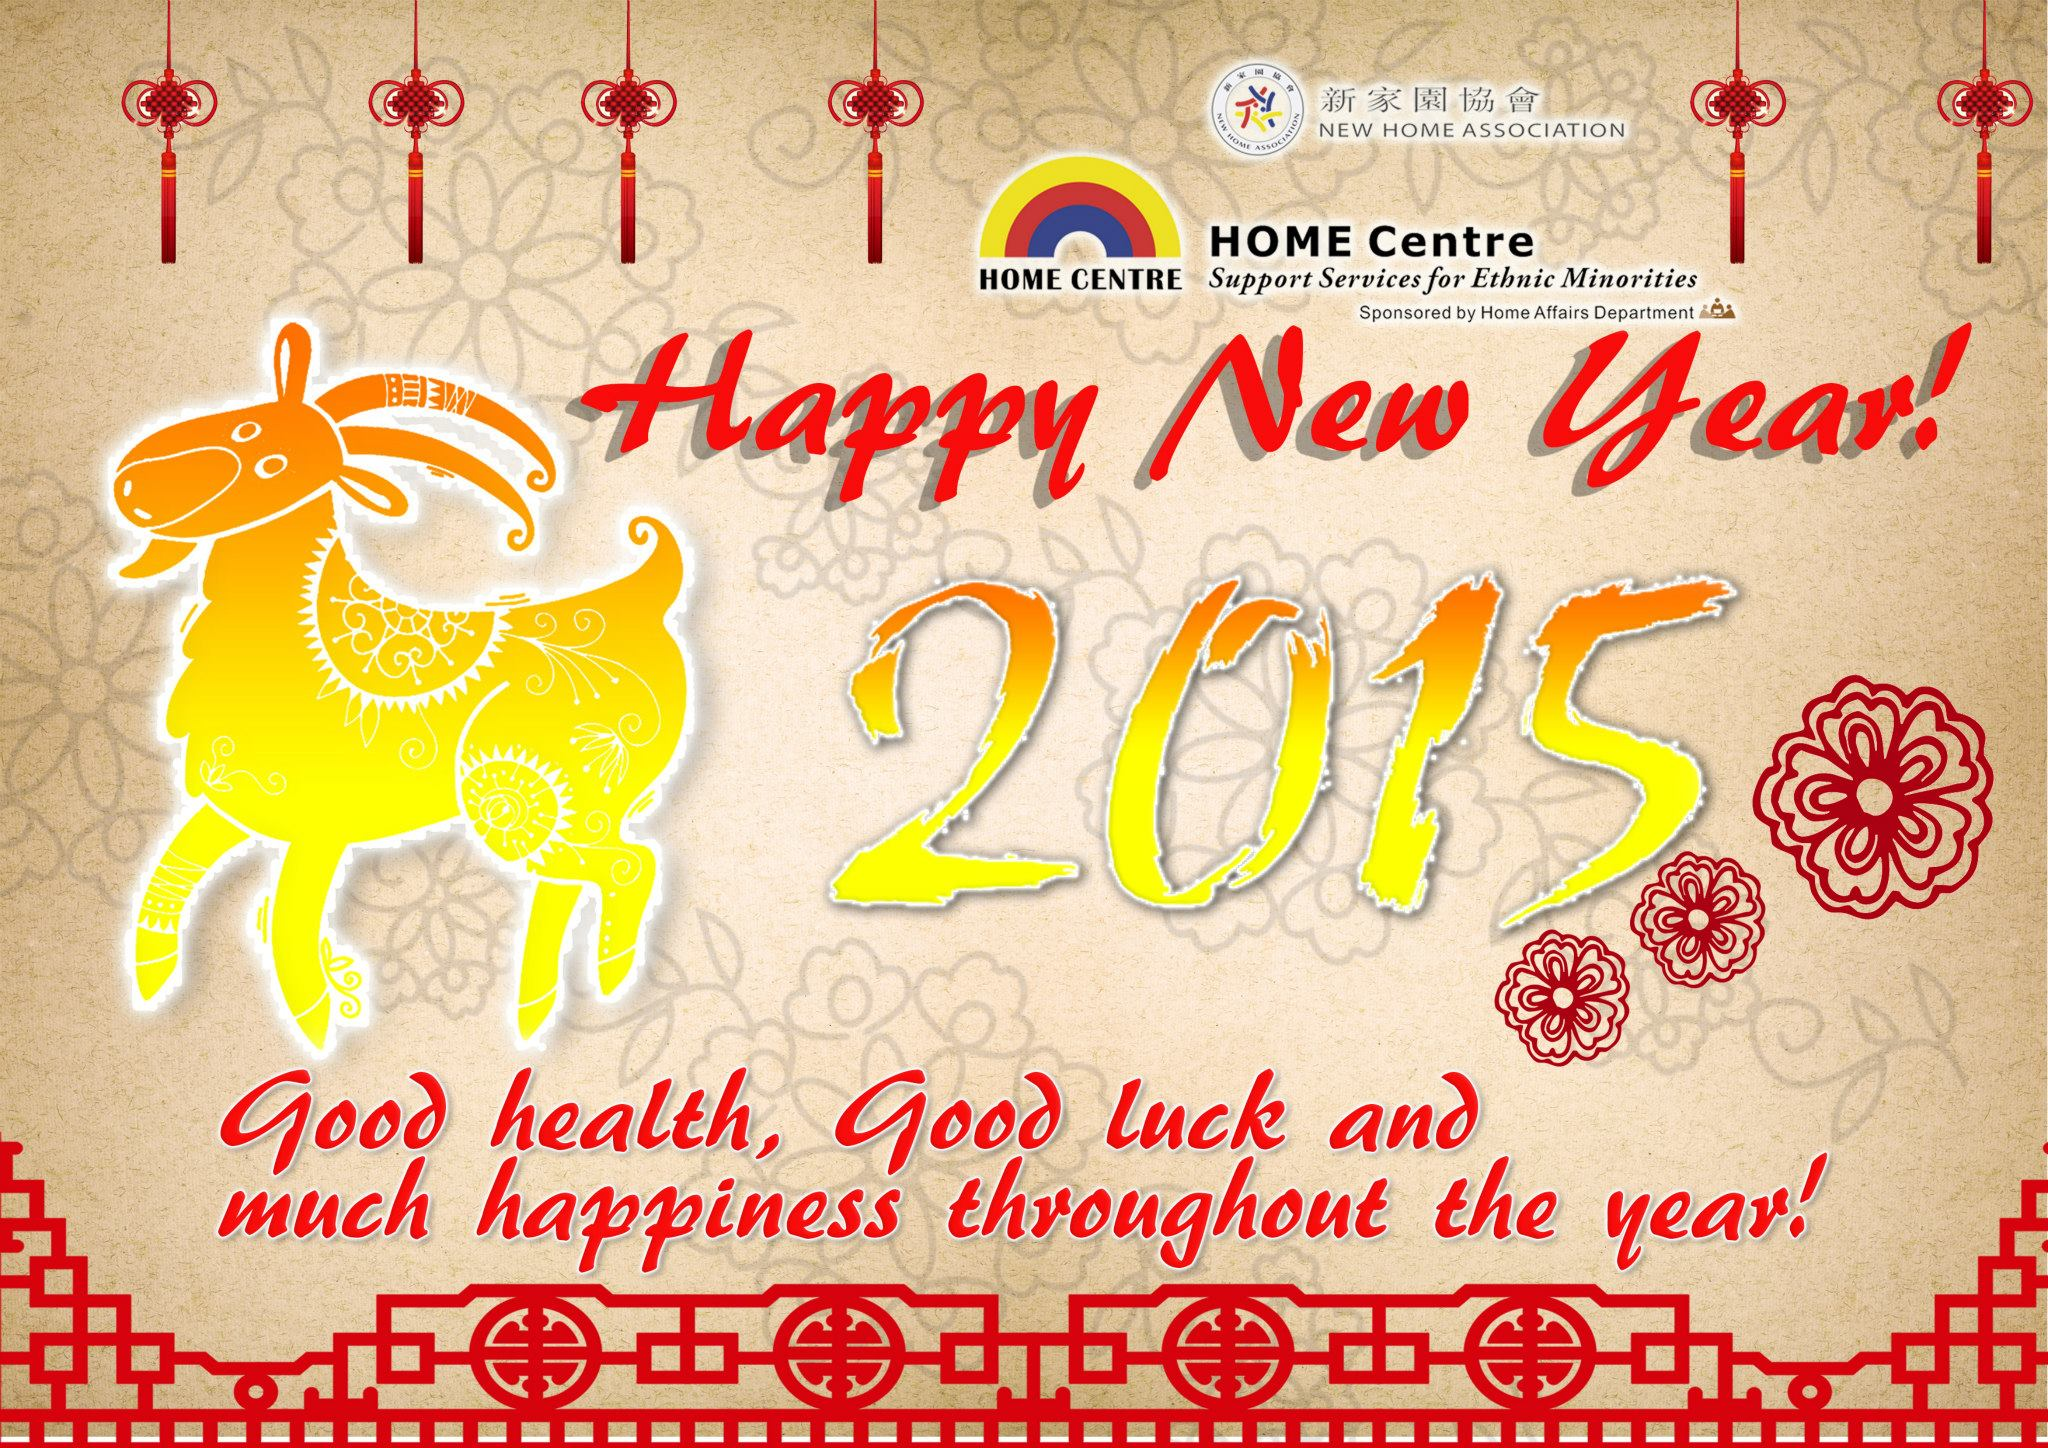 New Home Association - HOME Centre wishes you a Happy New Year 2015!